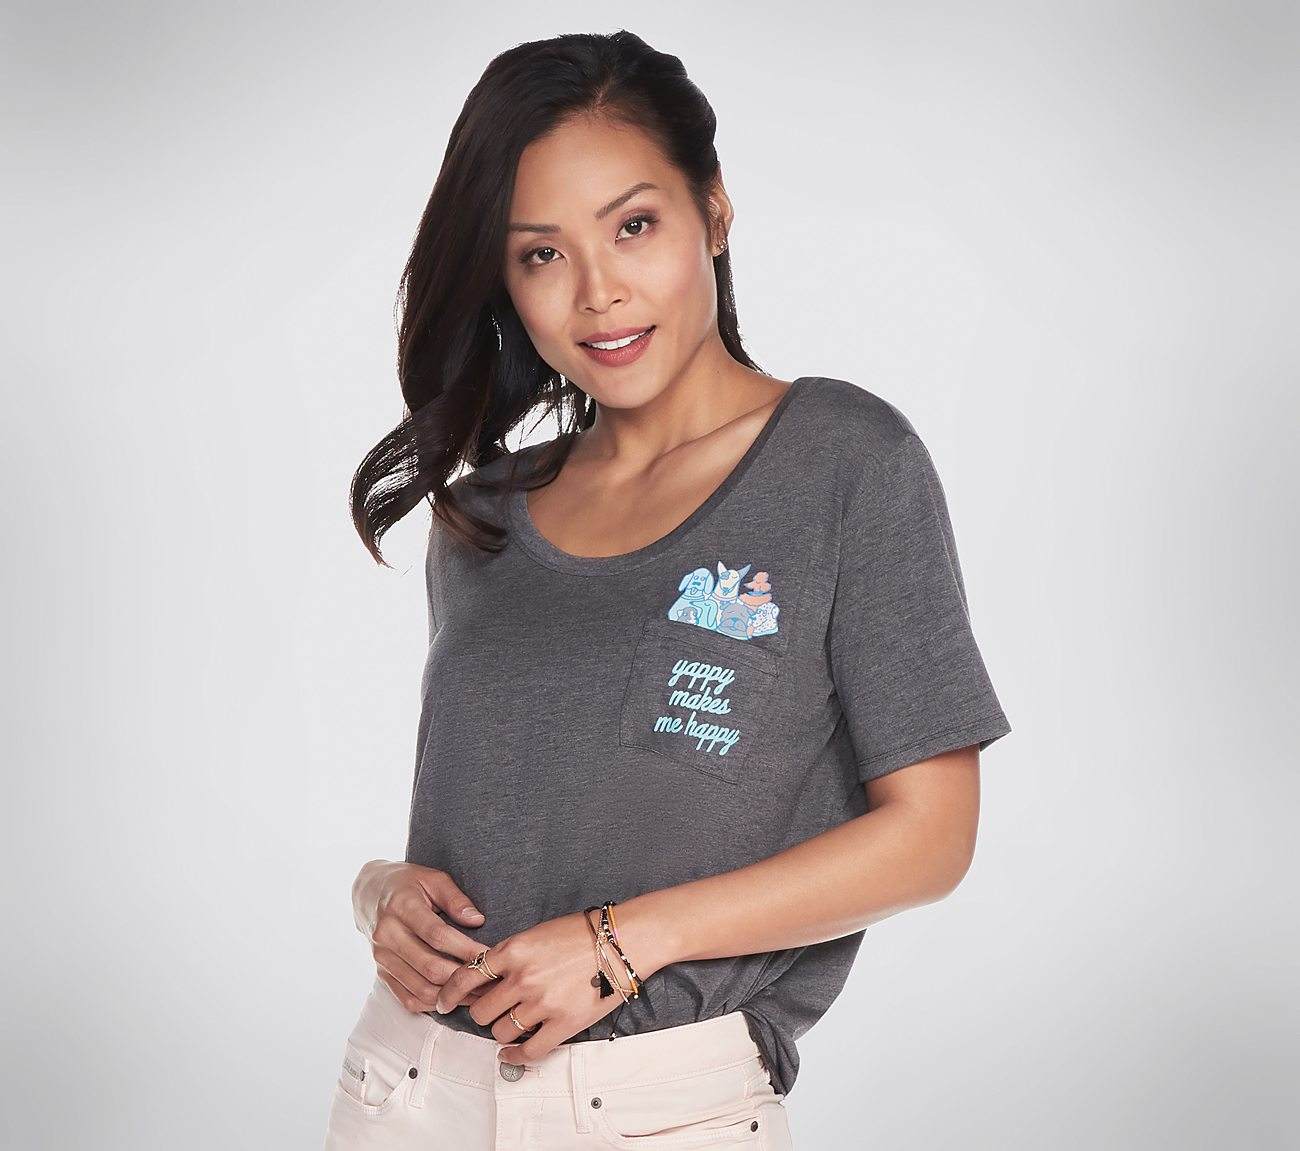 BOBS for Dogs Pastel Pocket Tee Shirt